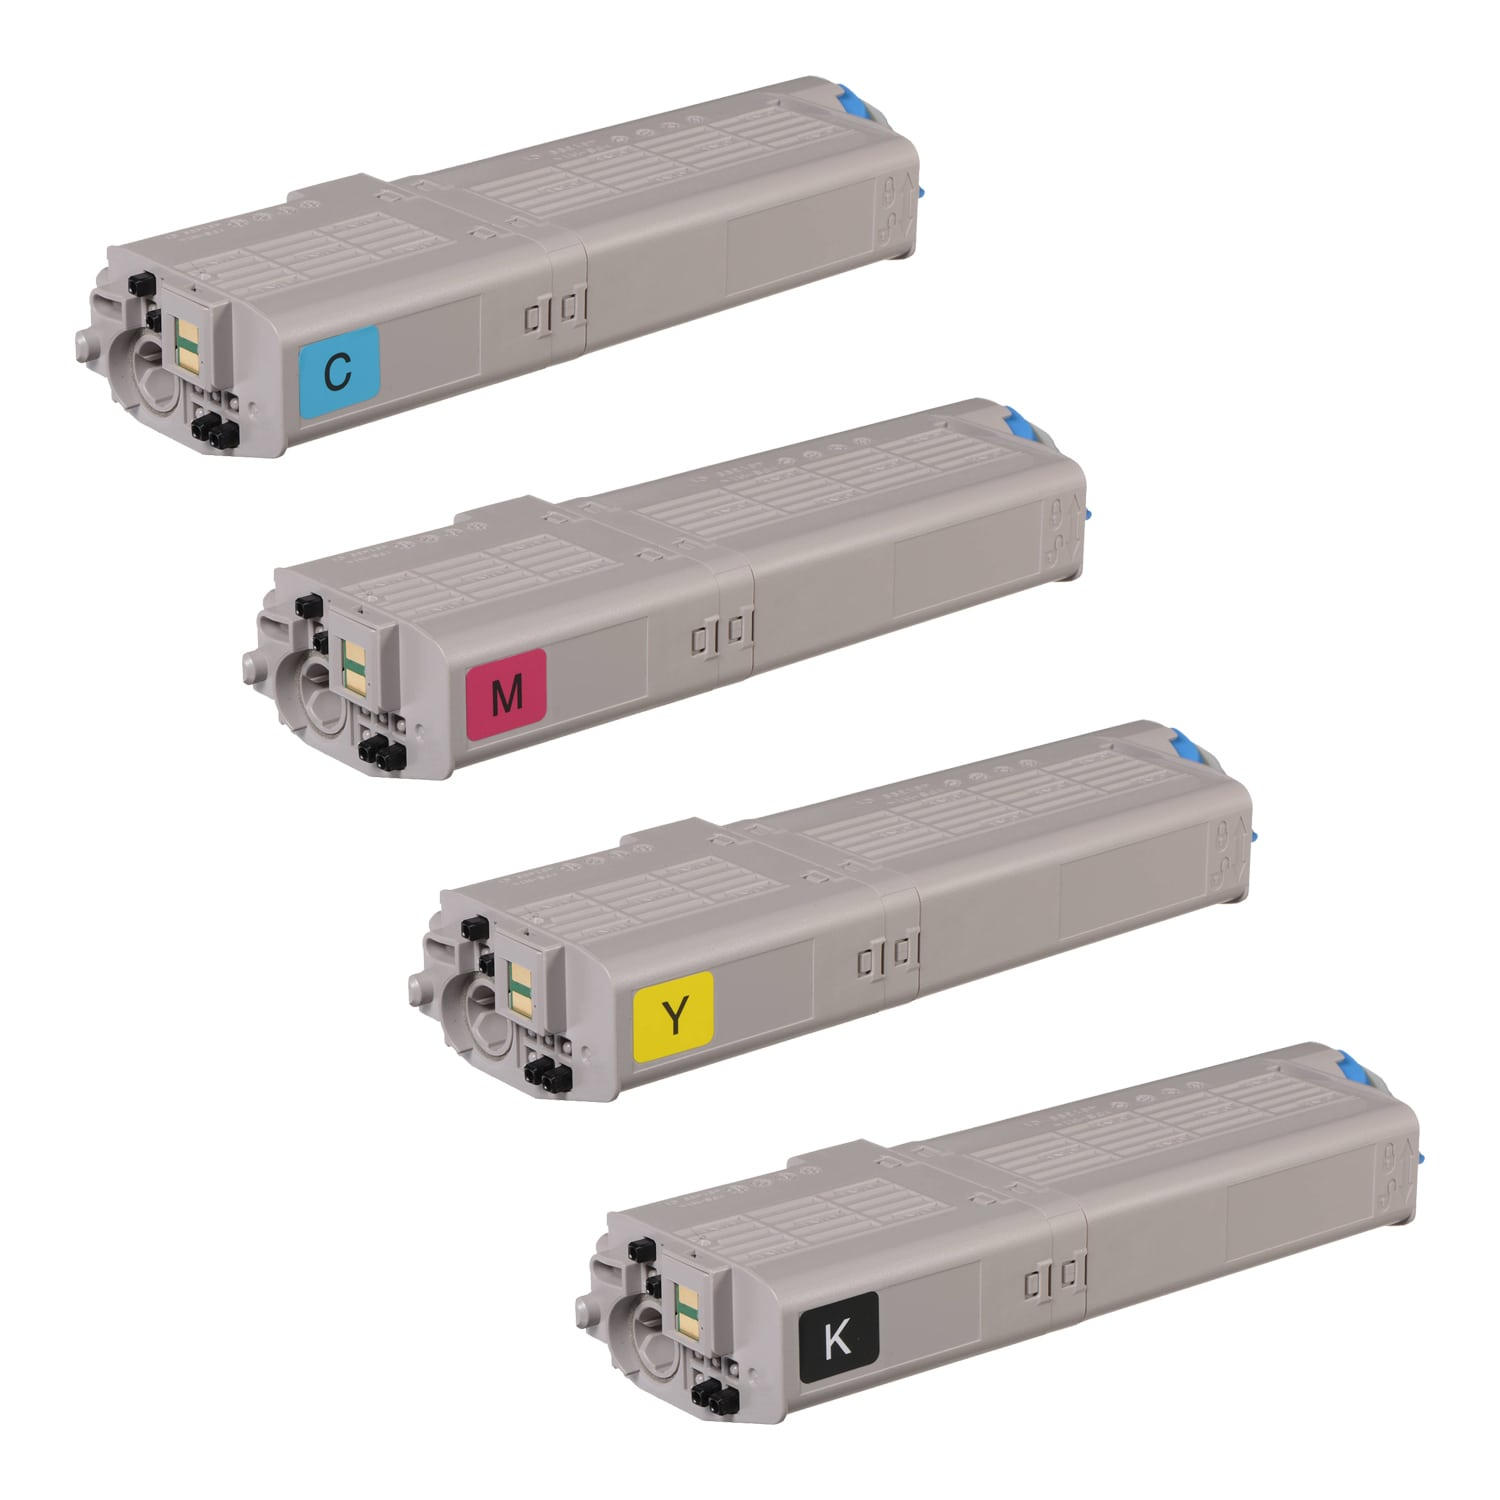 Compatible Okidata C532dn-MC573dn Toner High Capacity Pack - 4 Cartridges